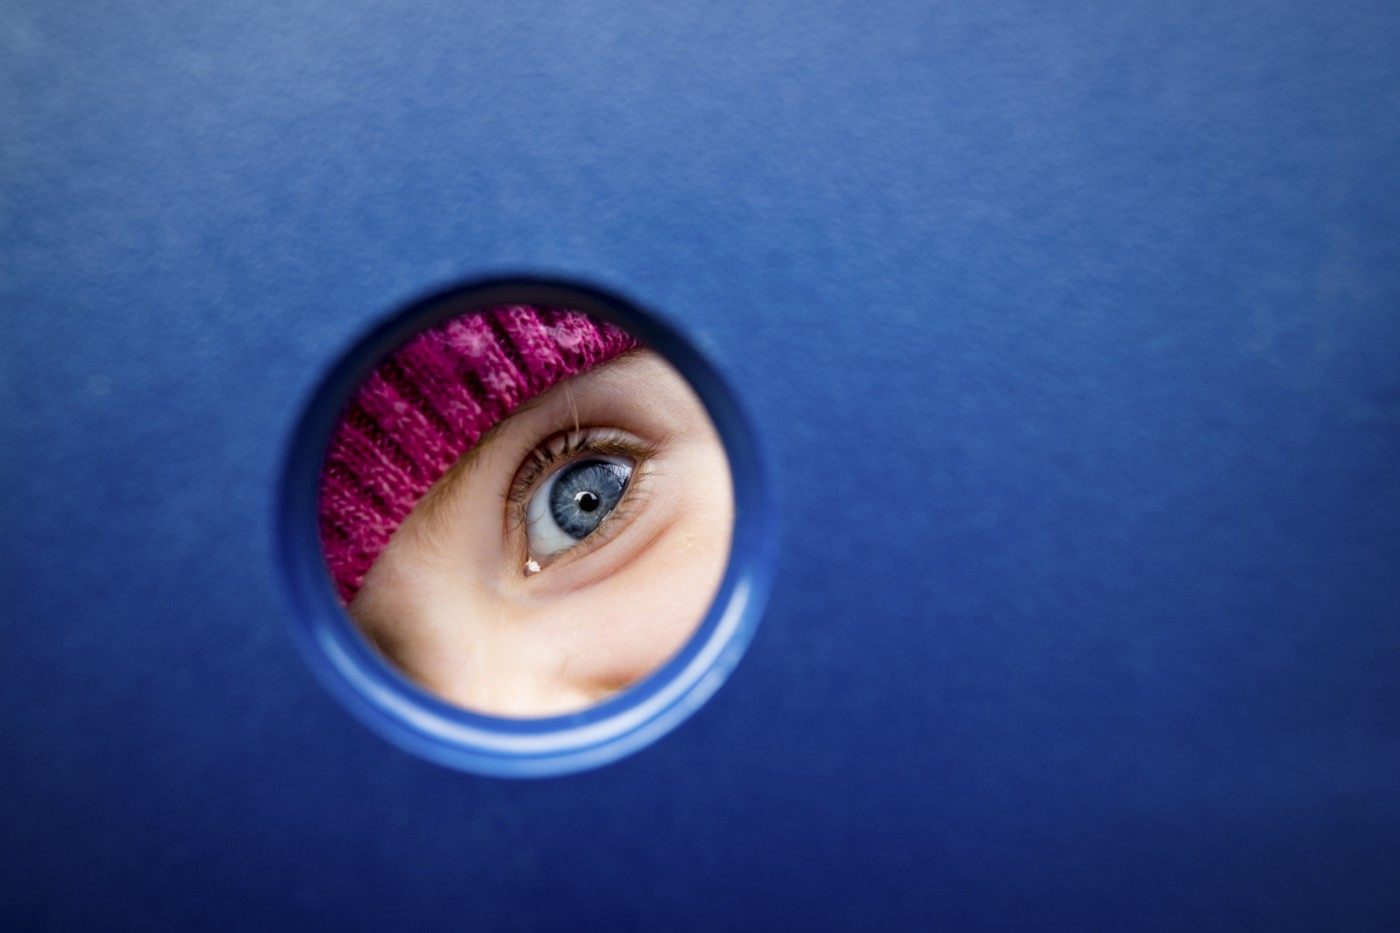 A photo of a young girl's eye peering through a hole in a blue wall.